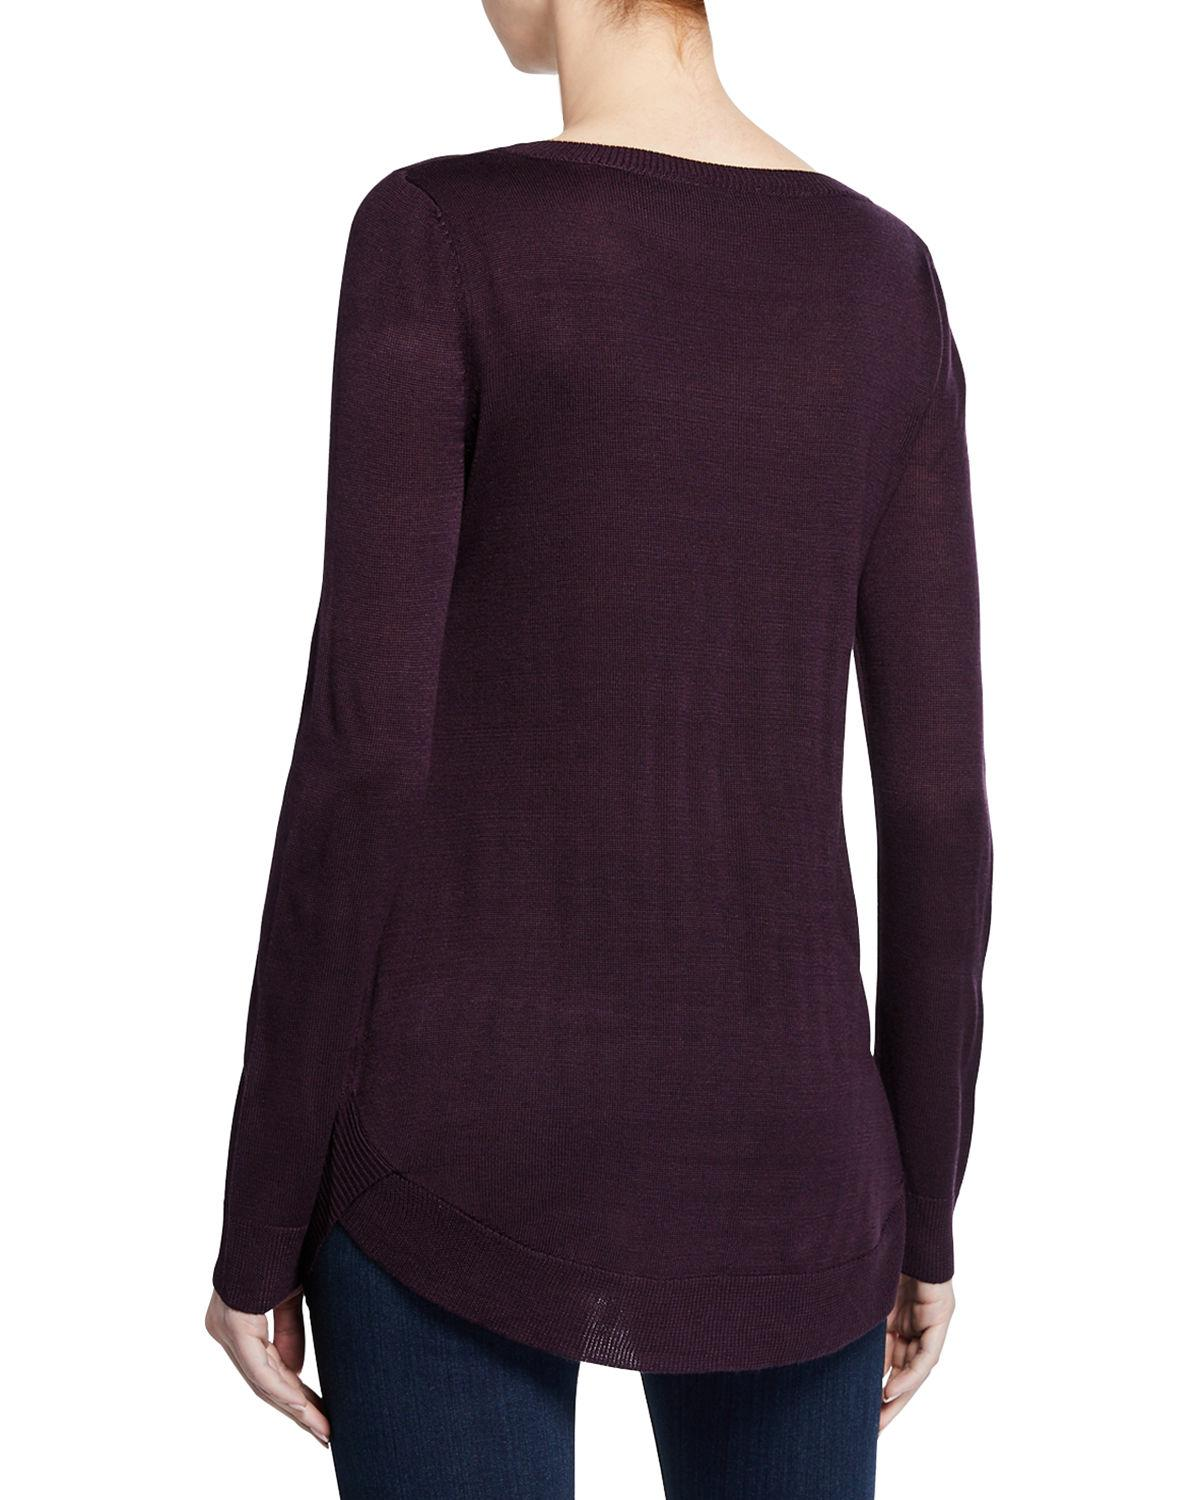 fabd583f15a09a Lyst - Neiman Marcus Circular-hem Long-sleeve Top in Black